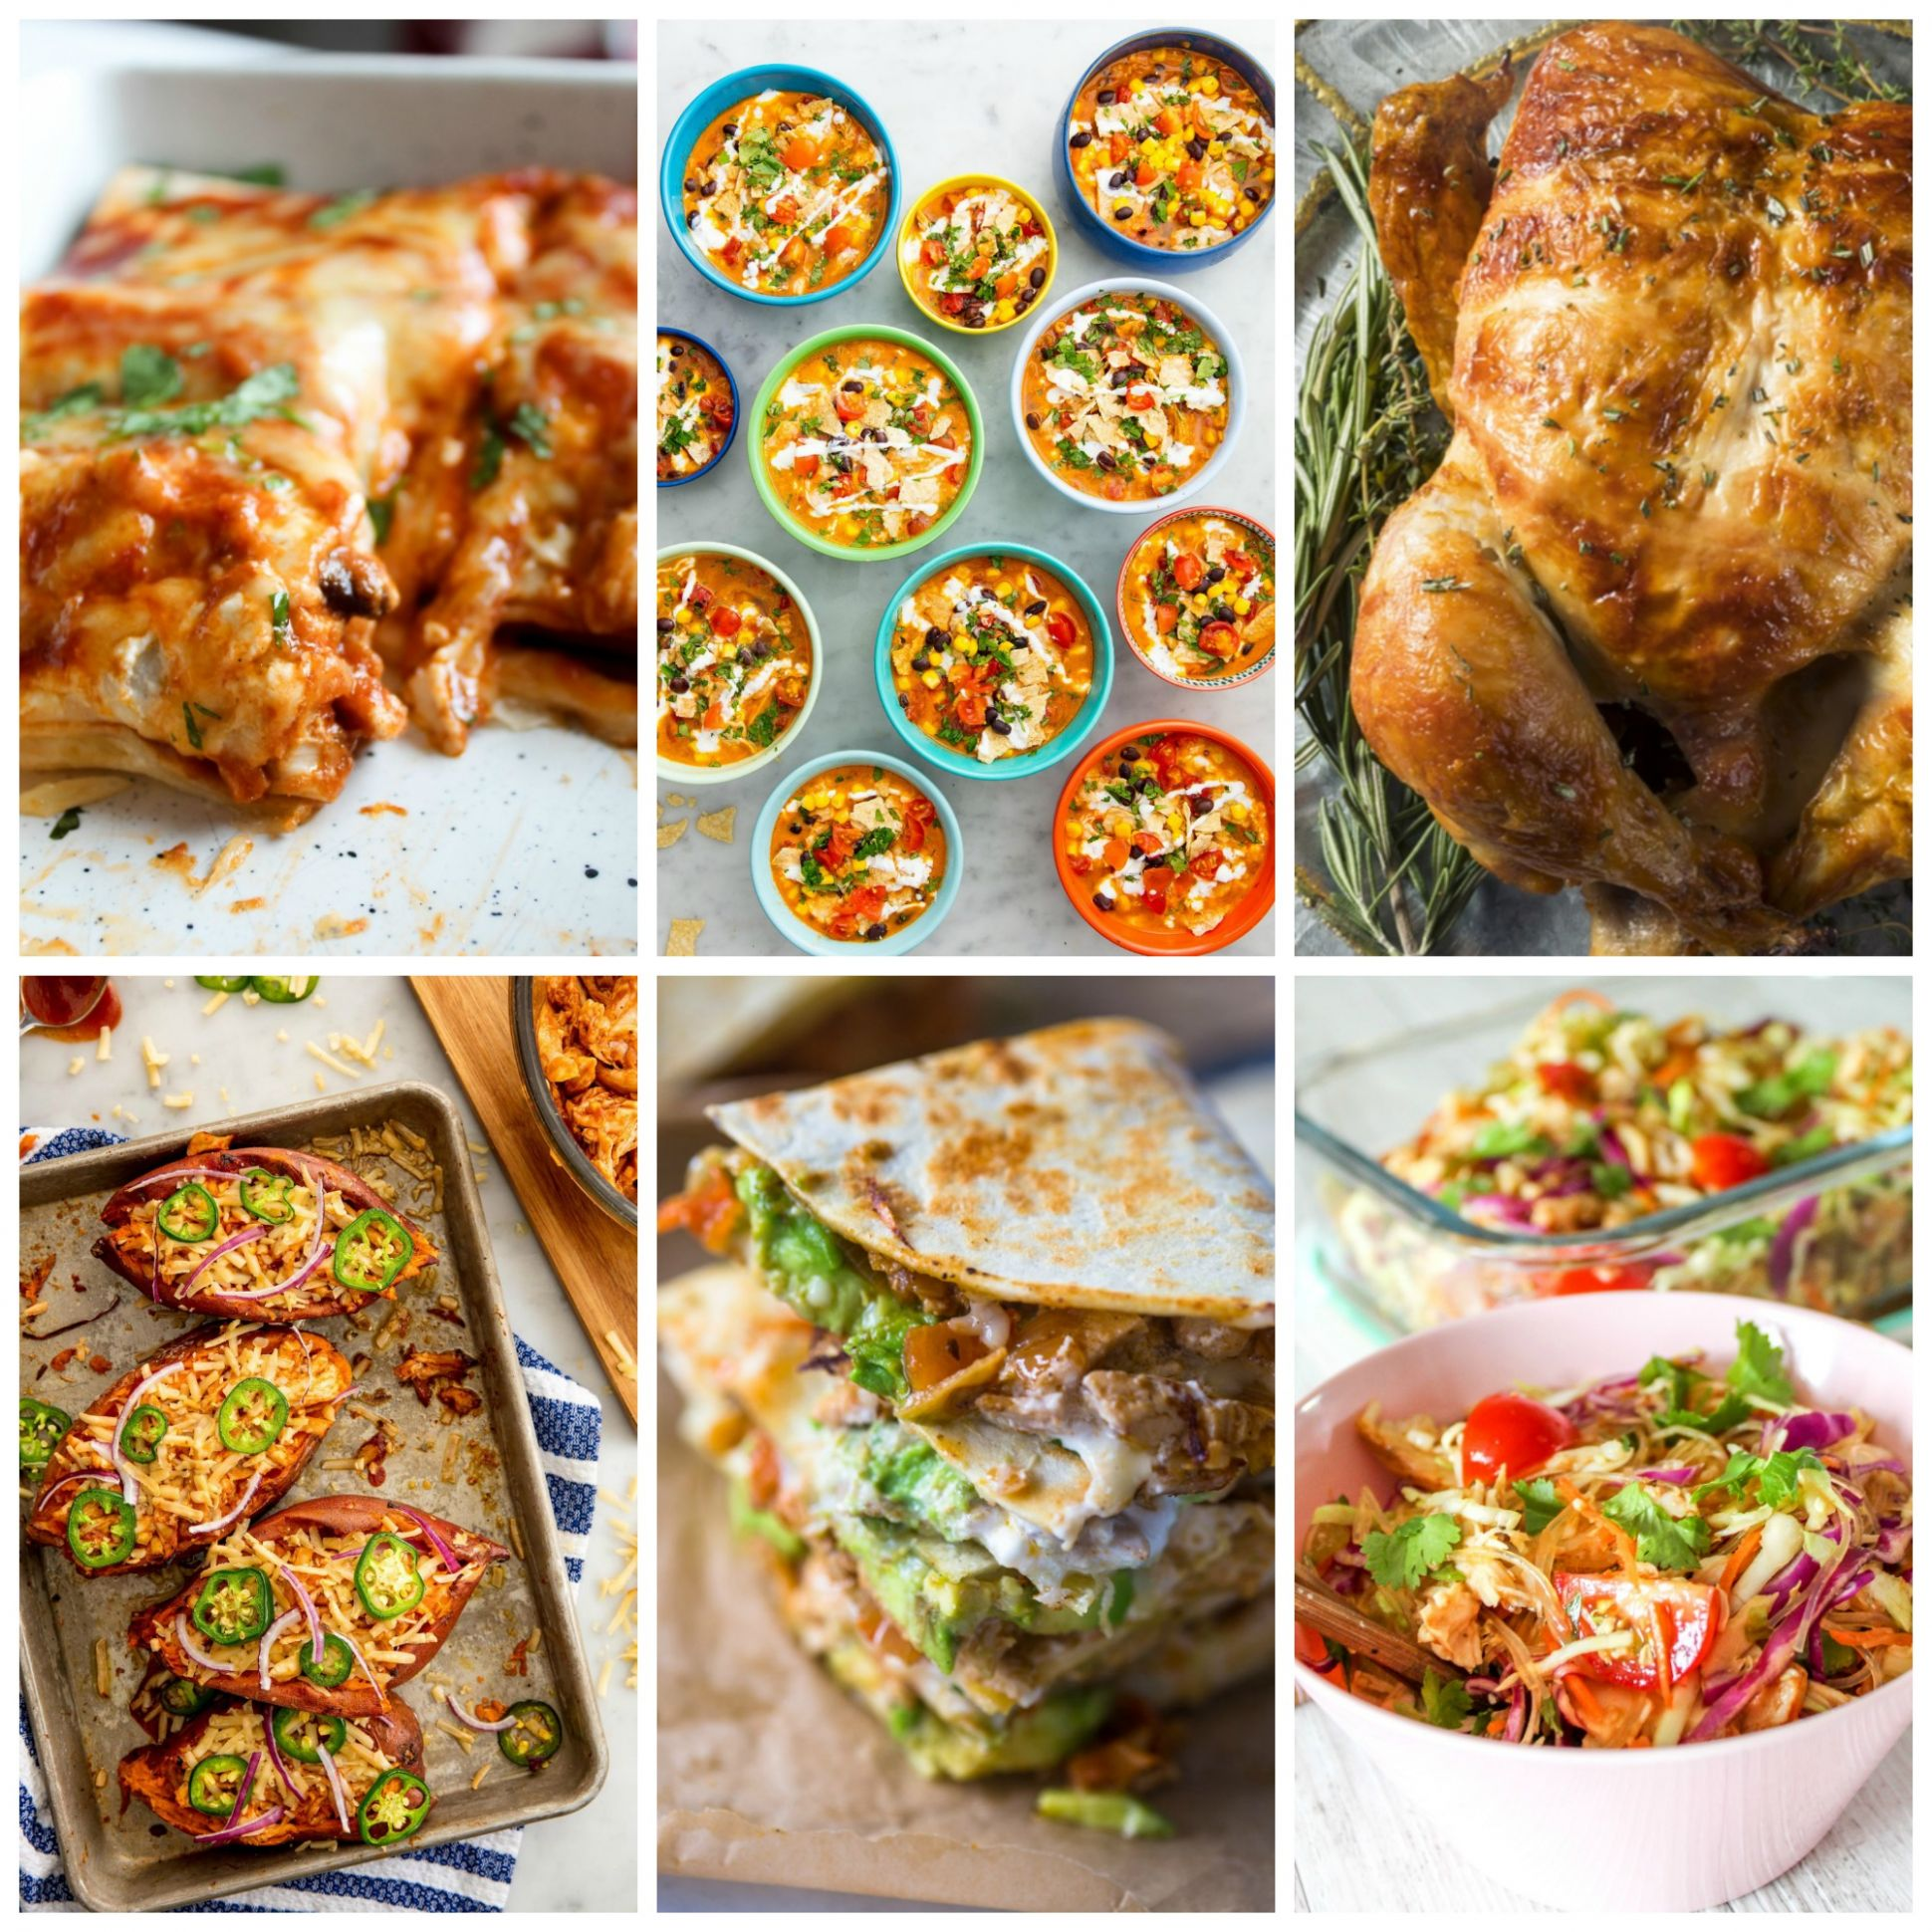 9 Healthy Meals to Make using a Rotisserie Chicken - Clean Eating ...